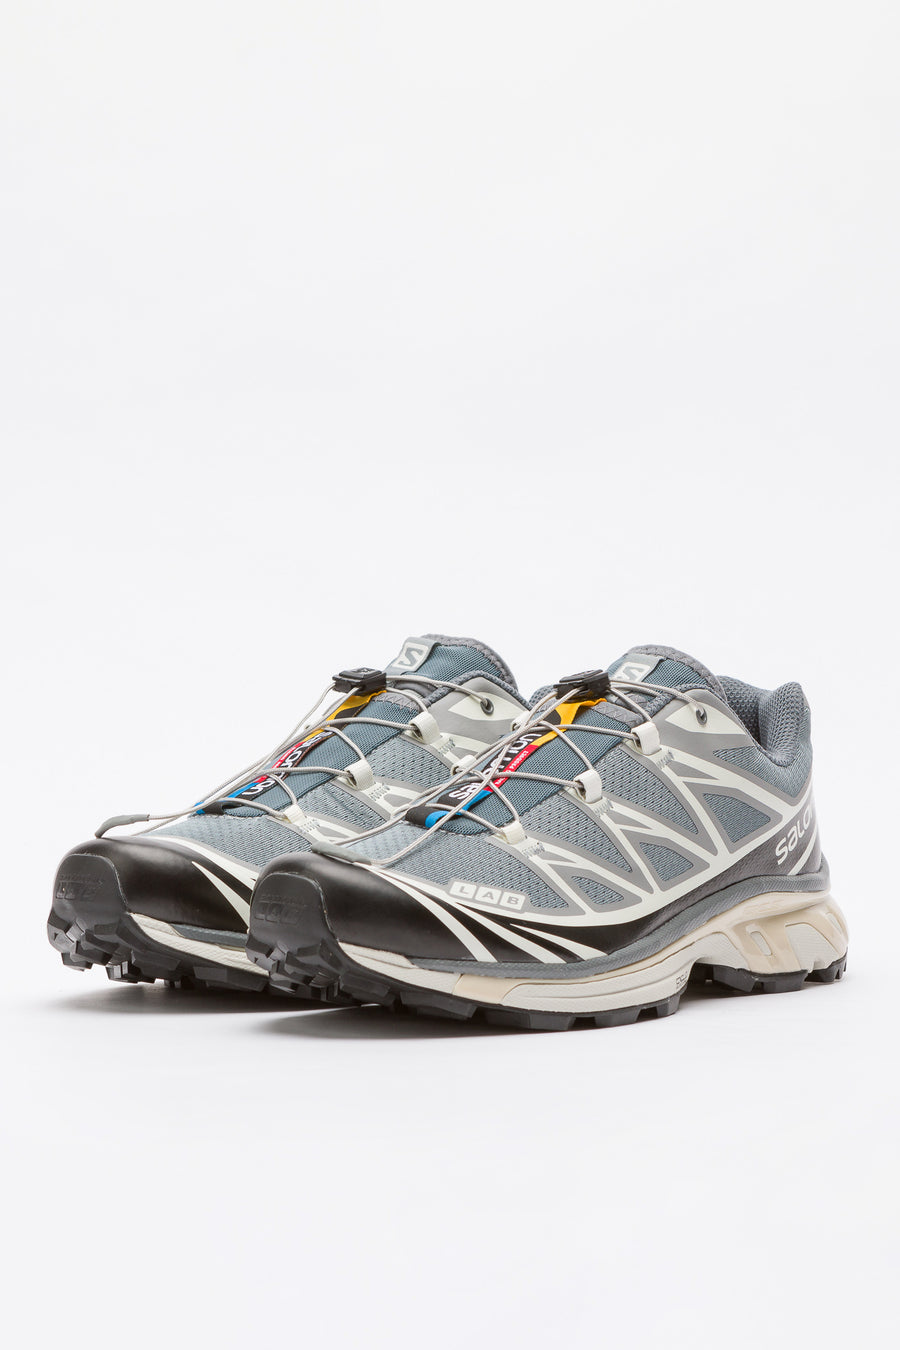 SALOMON S/LAB XT-6 Softground LT ADV in Monument/Phantom - Notre